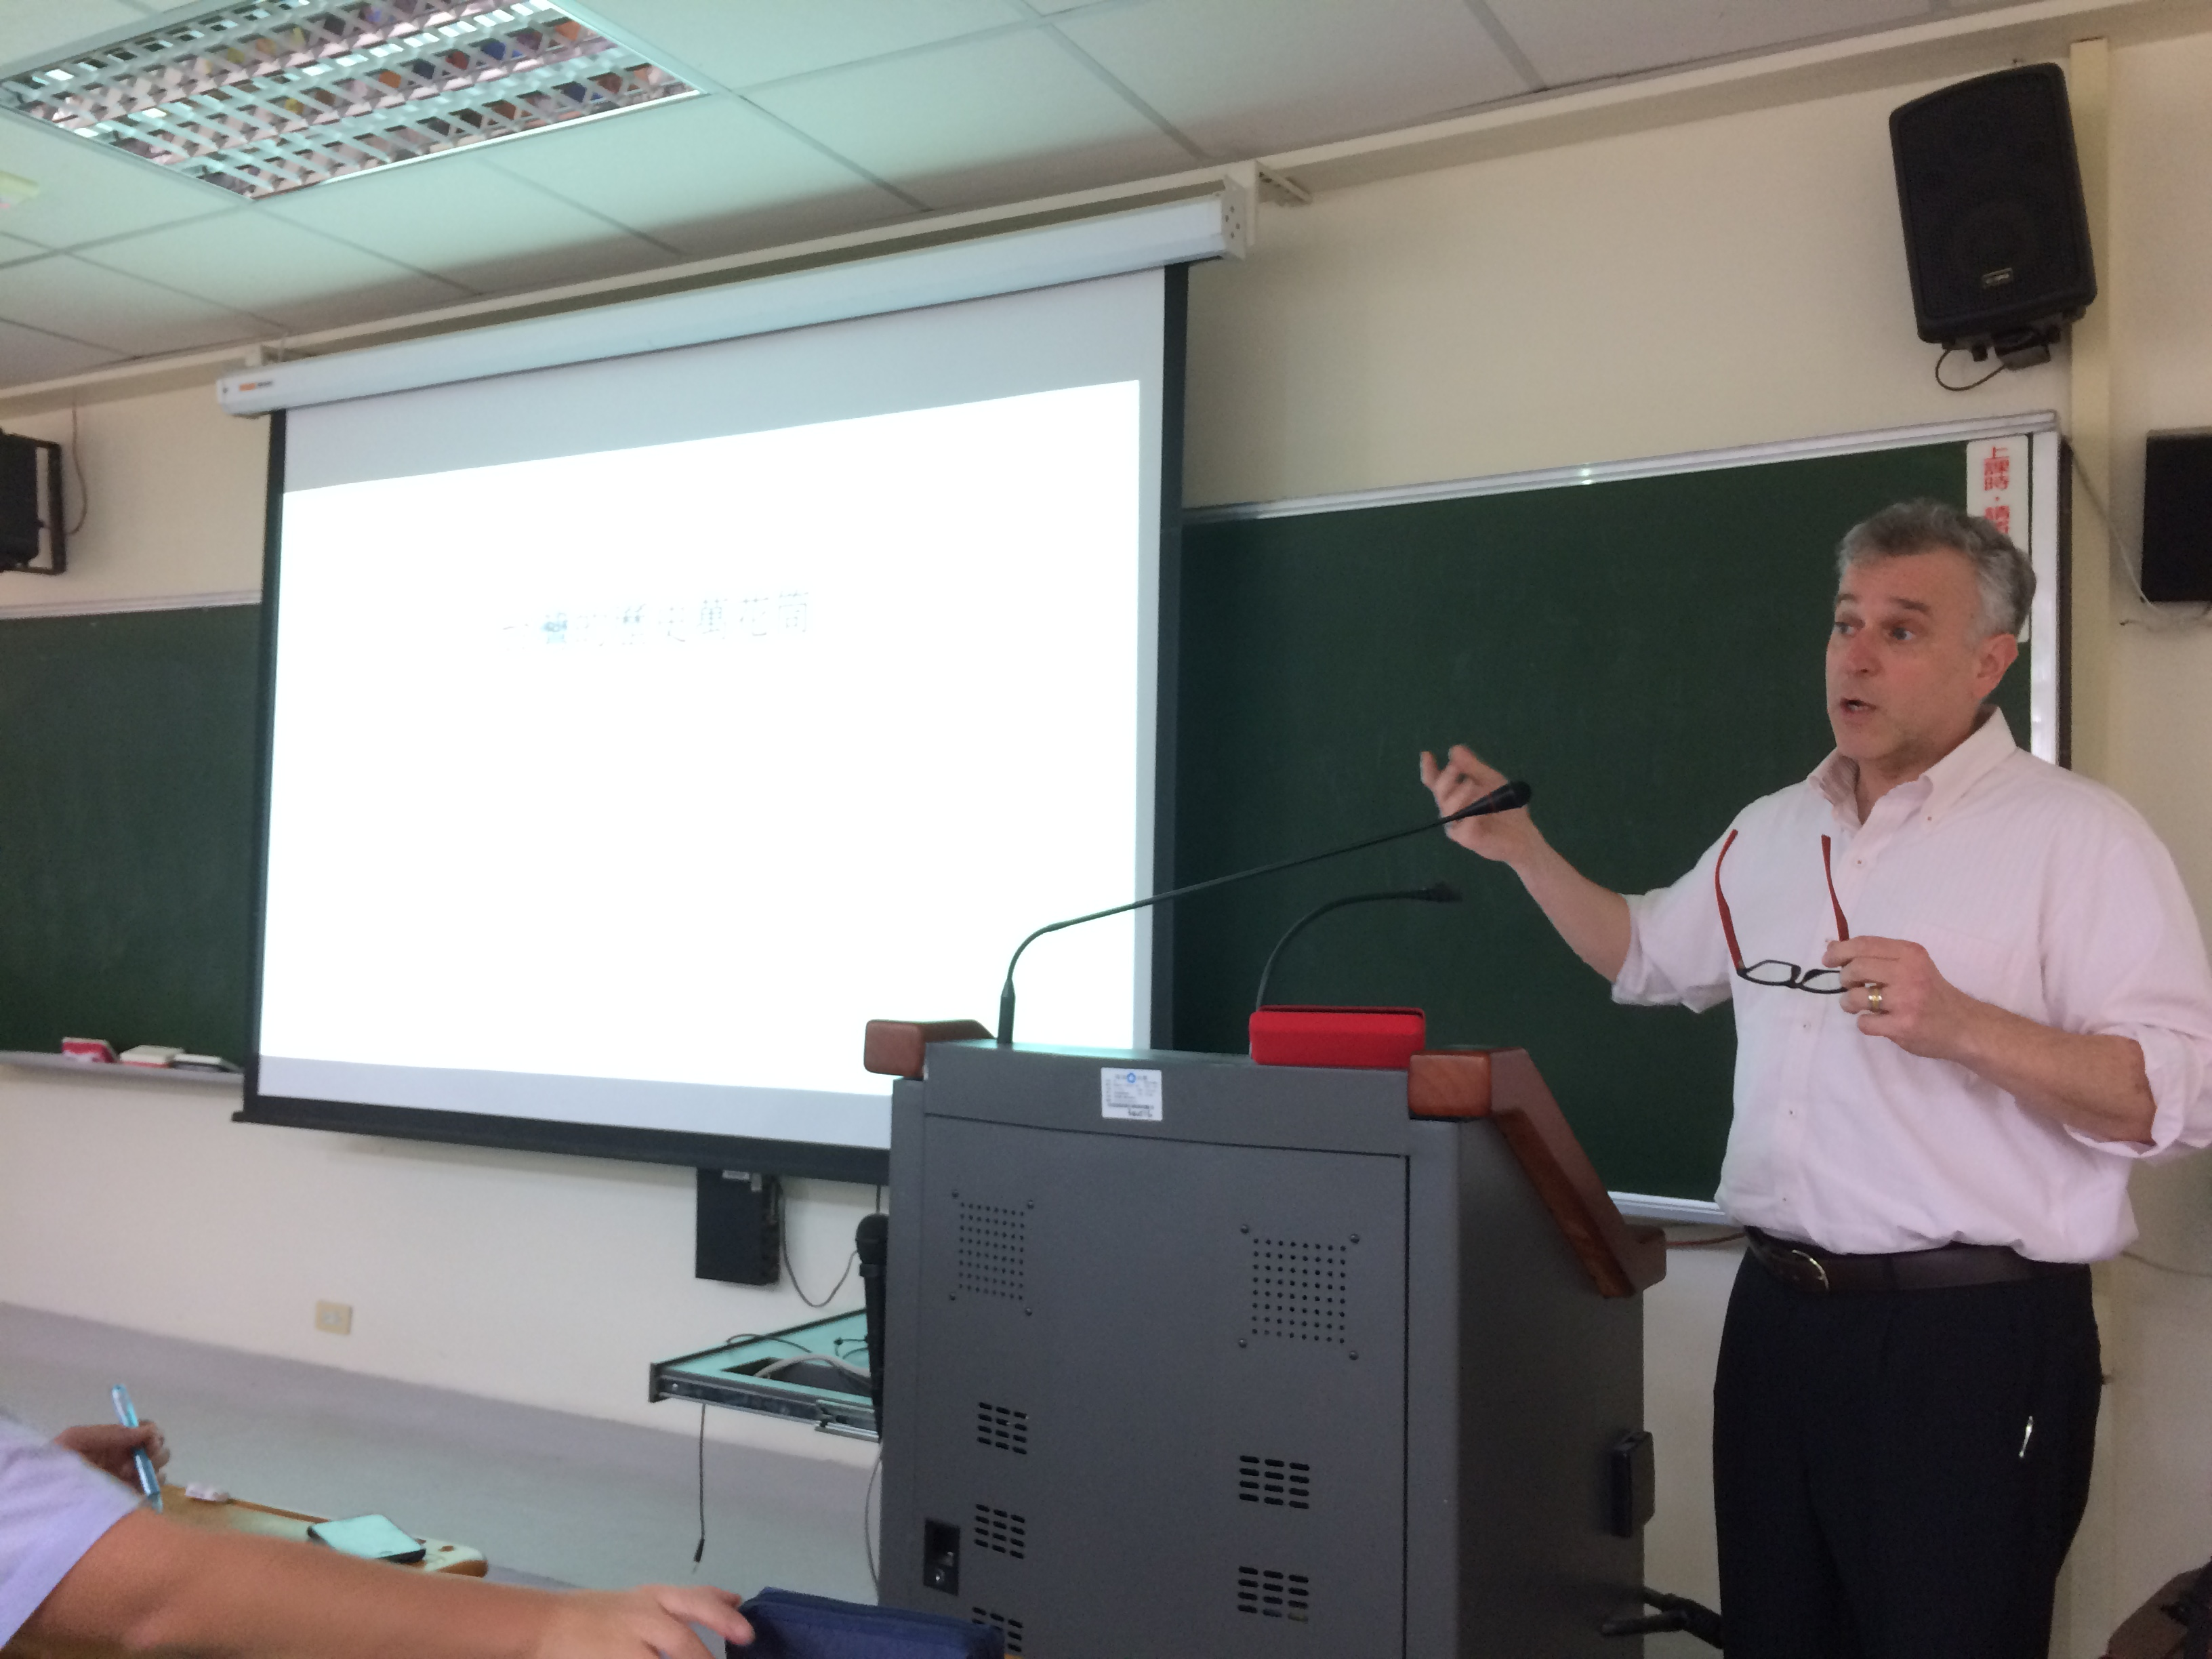 Prof. Barak Kushner gives talks in Taiwan at National Chengchi University (國立政治大學)